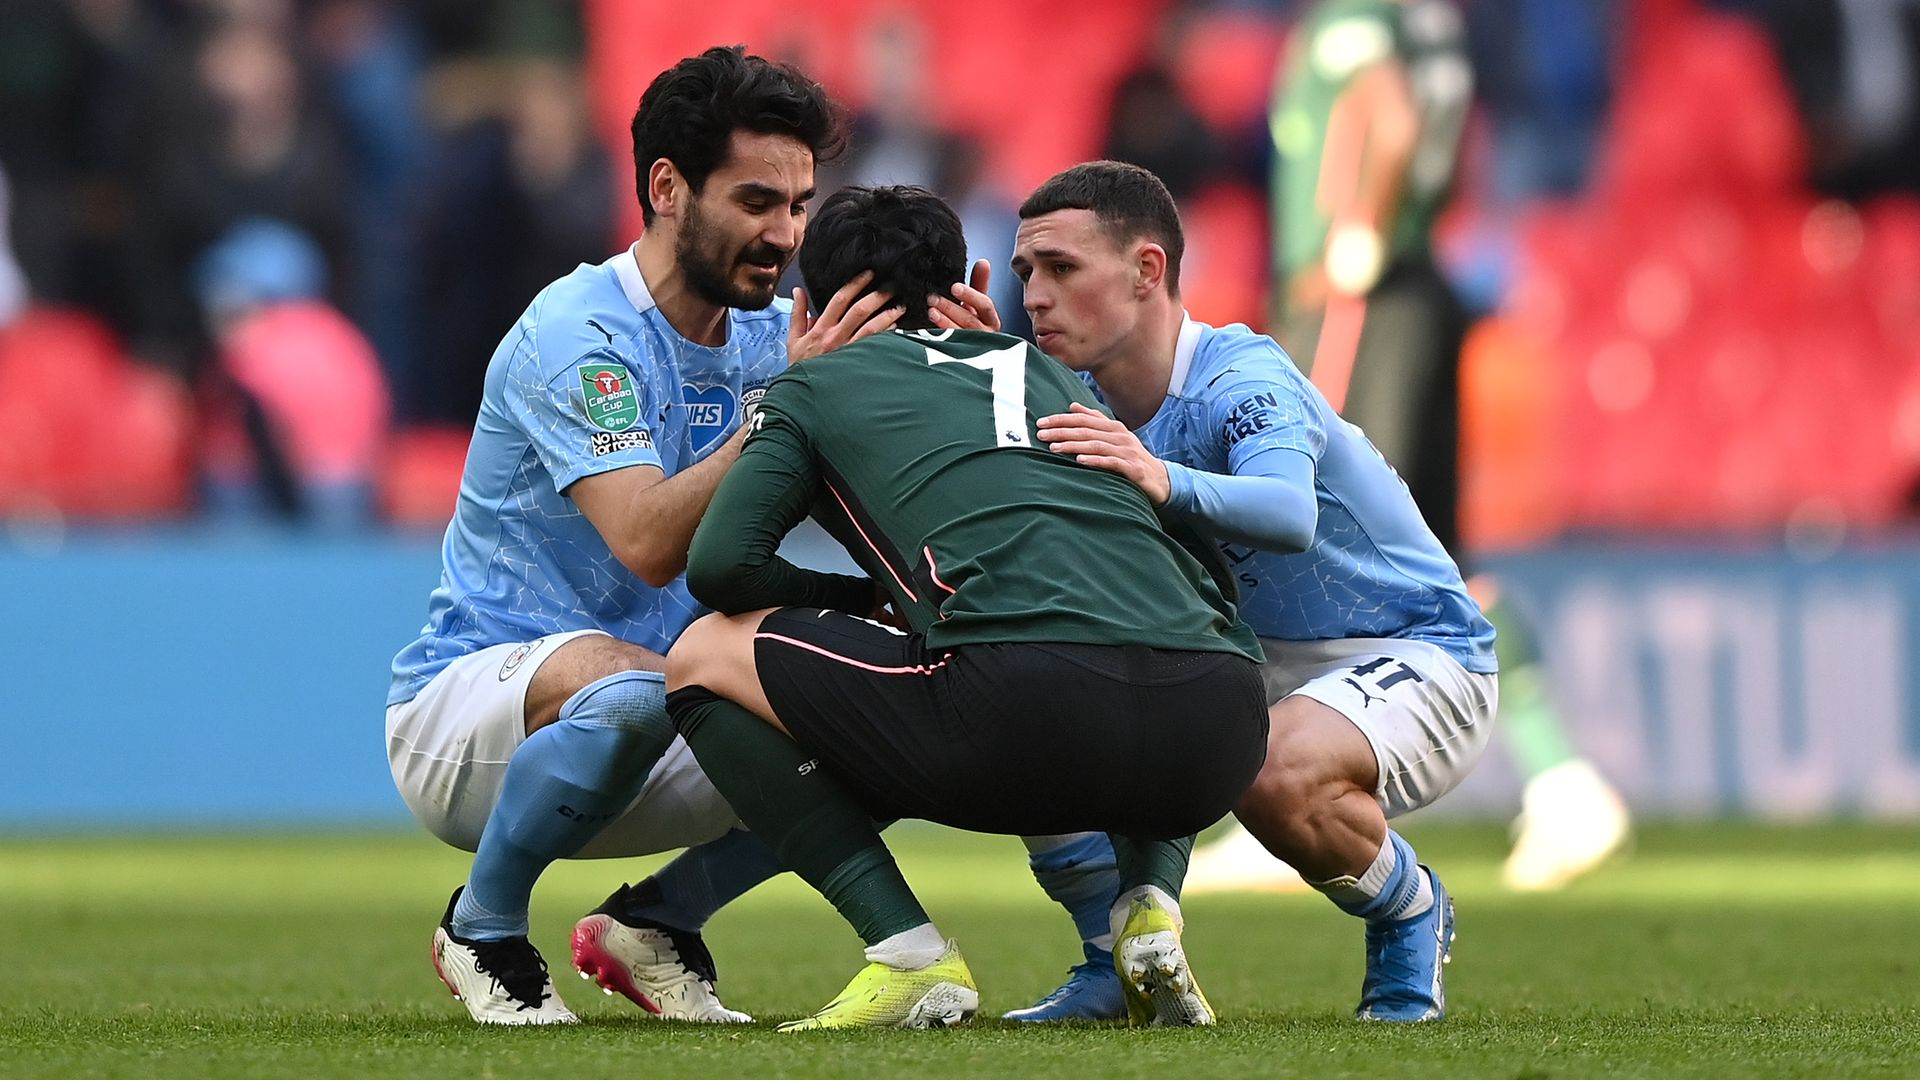 Son Heung-Min of Tottenham Hotspur is consoled by Ilkay Gündogan and Phil Foden of Manchester City after the Carabao Cup final - Credit: Photo by Tottenham Hotspur FC/Tottenham Hotspur FC via Getty Images